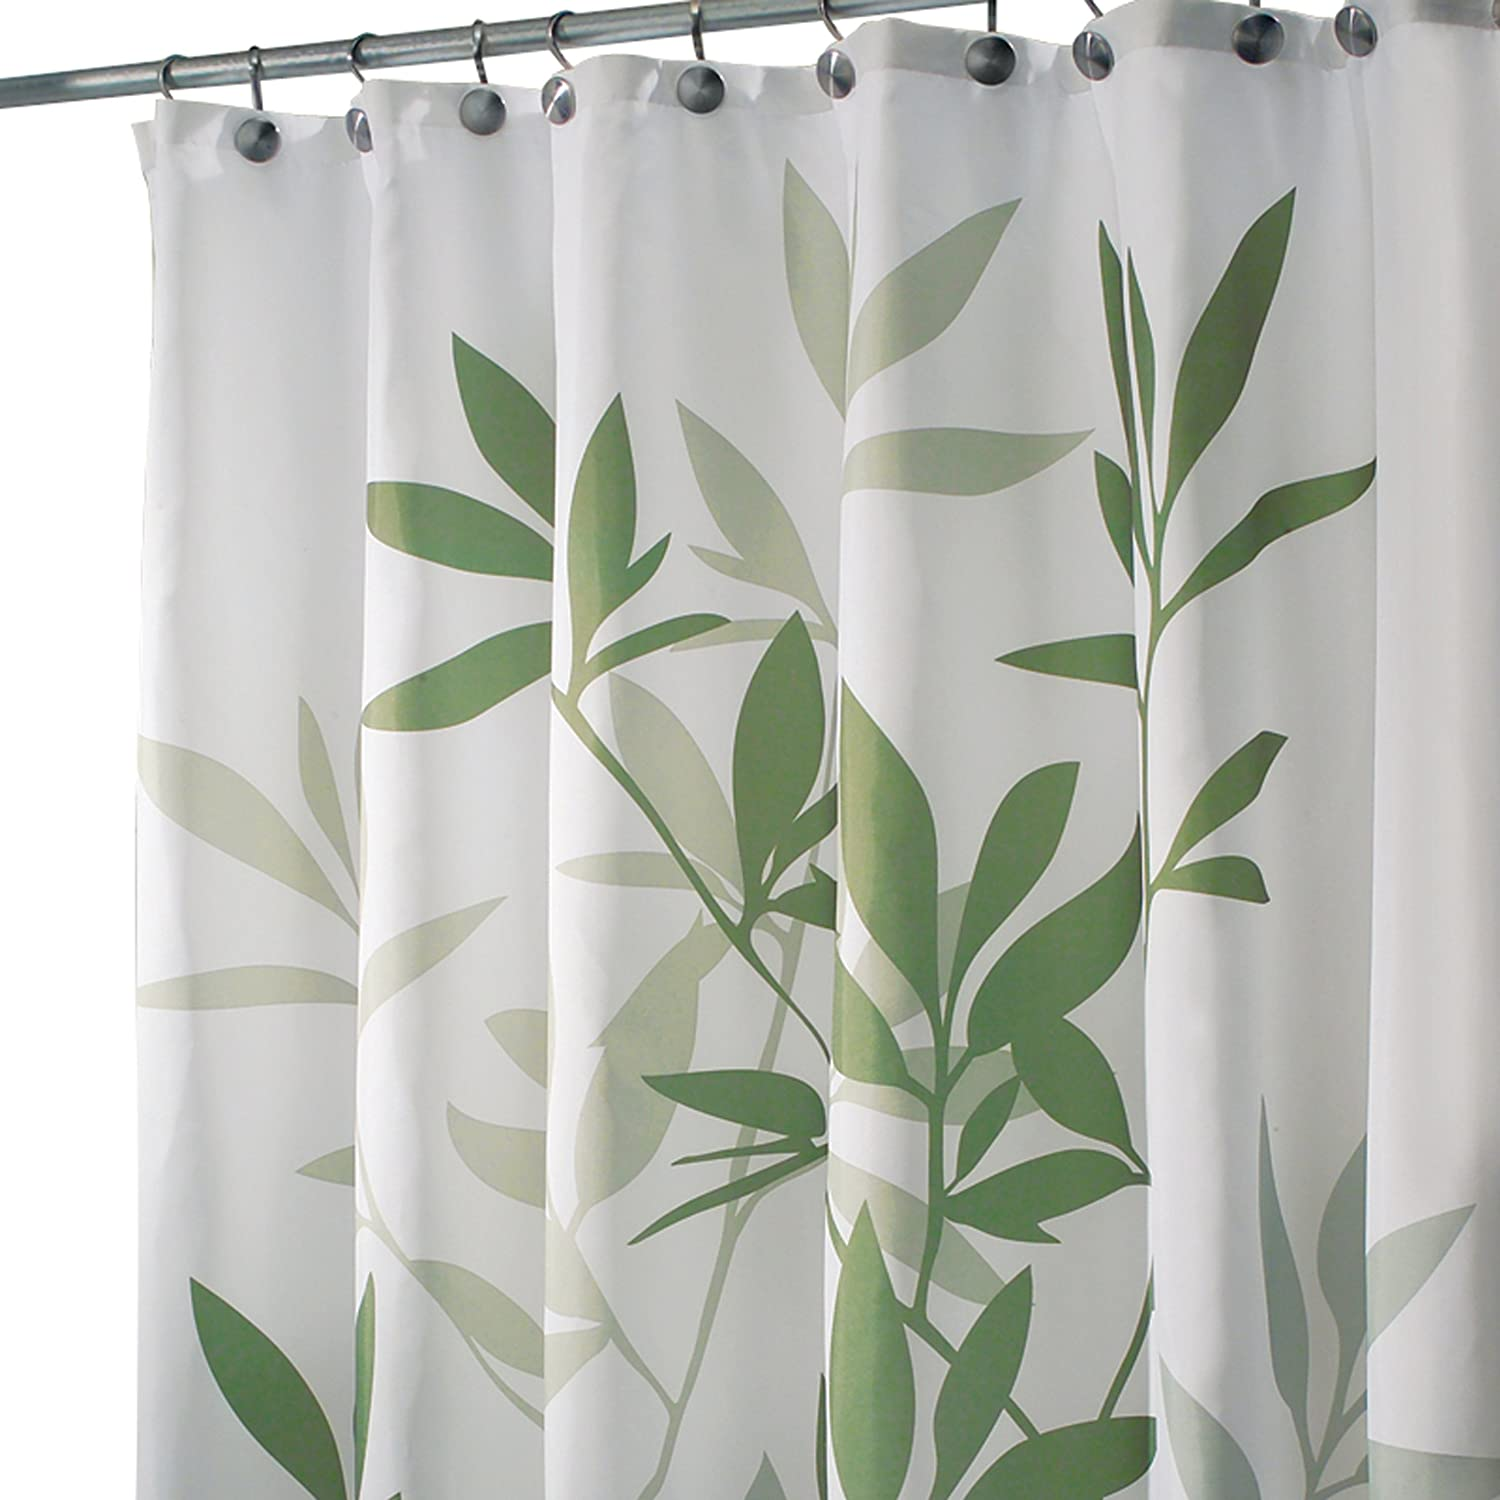 Interdesign leaves long shower curtain green 72 inch by for Inter designing